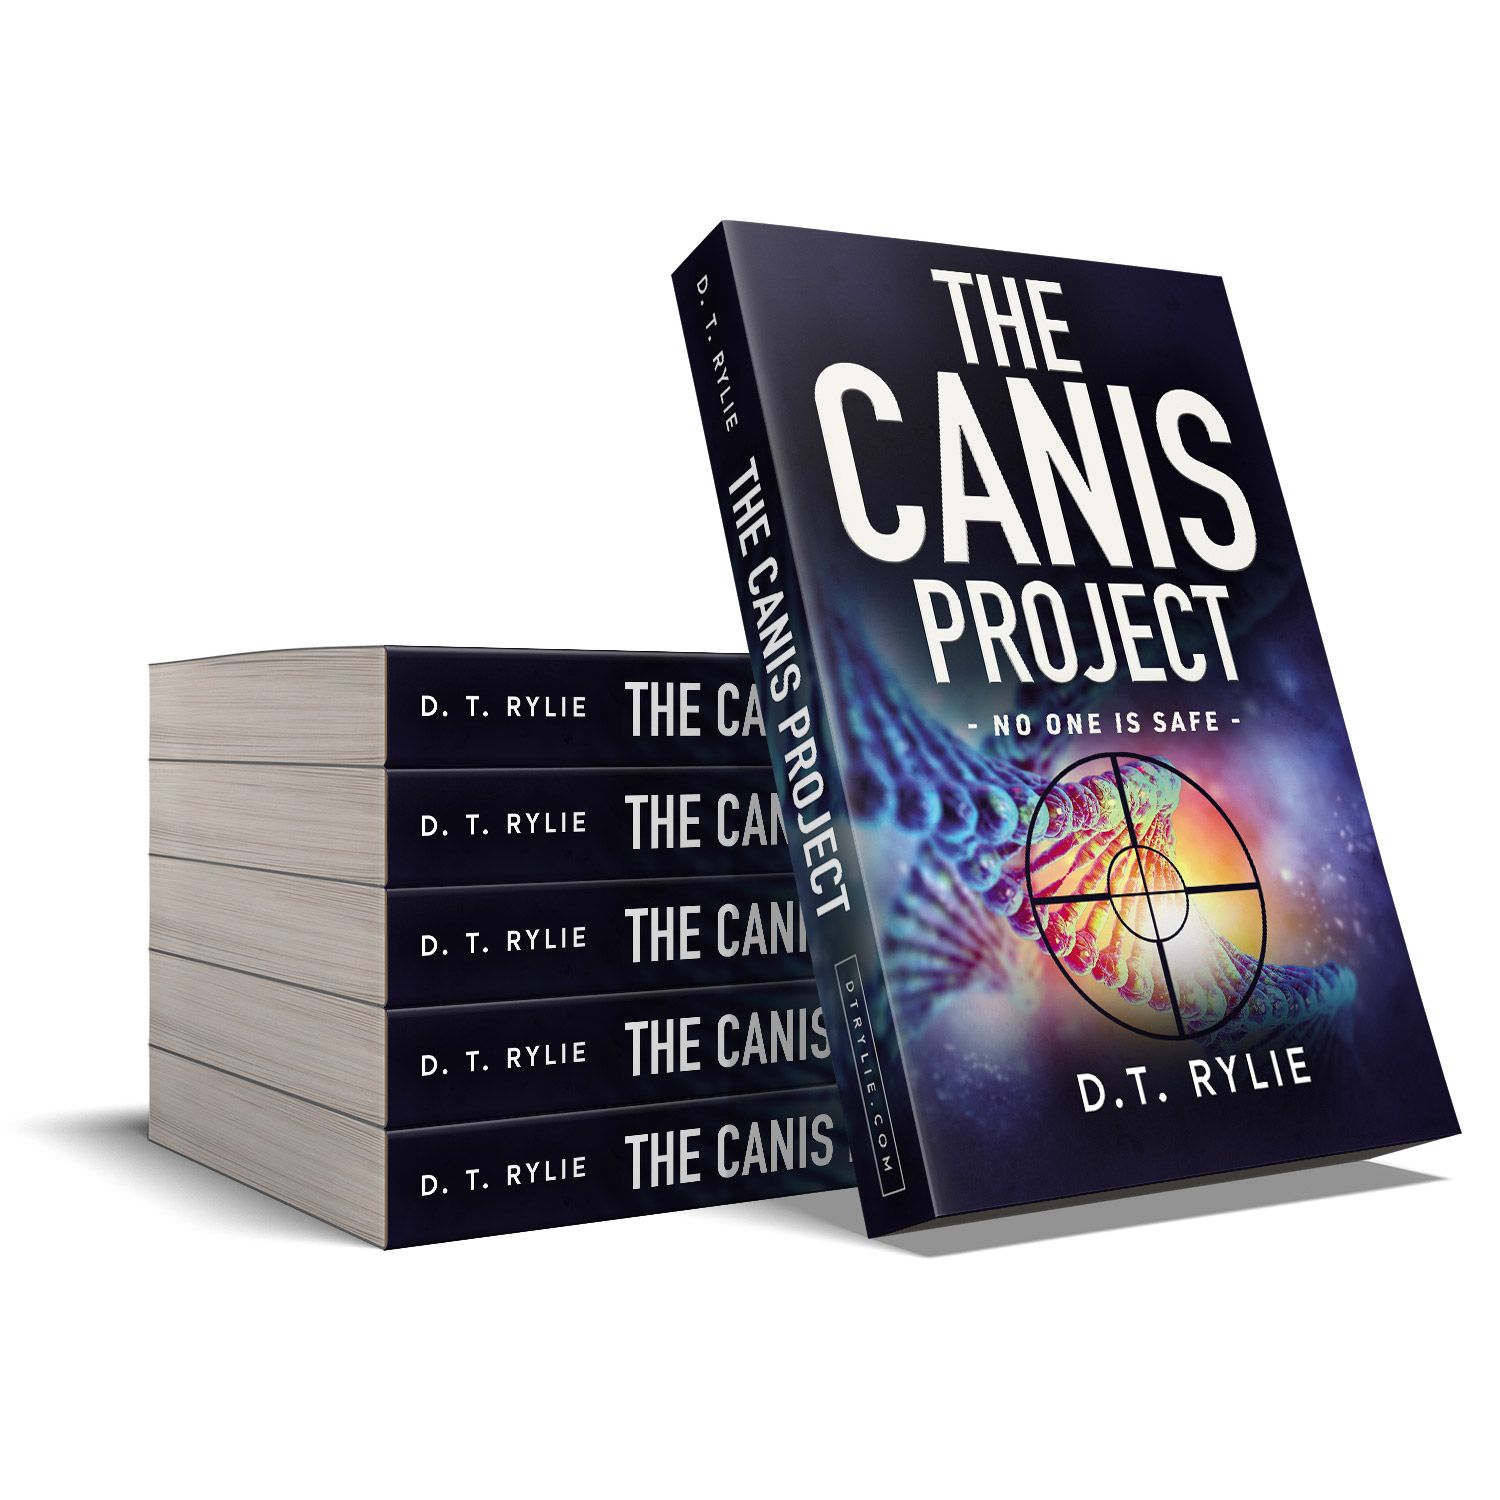 'The Canis Project' is a dark, genetics thriller by D.T. Rylie. The book cover design and interior formatting are by Mark Thomas. To learn more about what Mark could do for your book, please visit coverness.com.